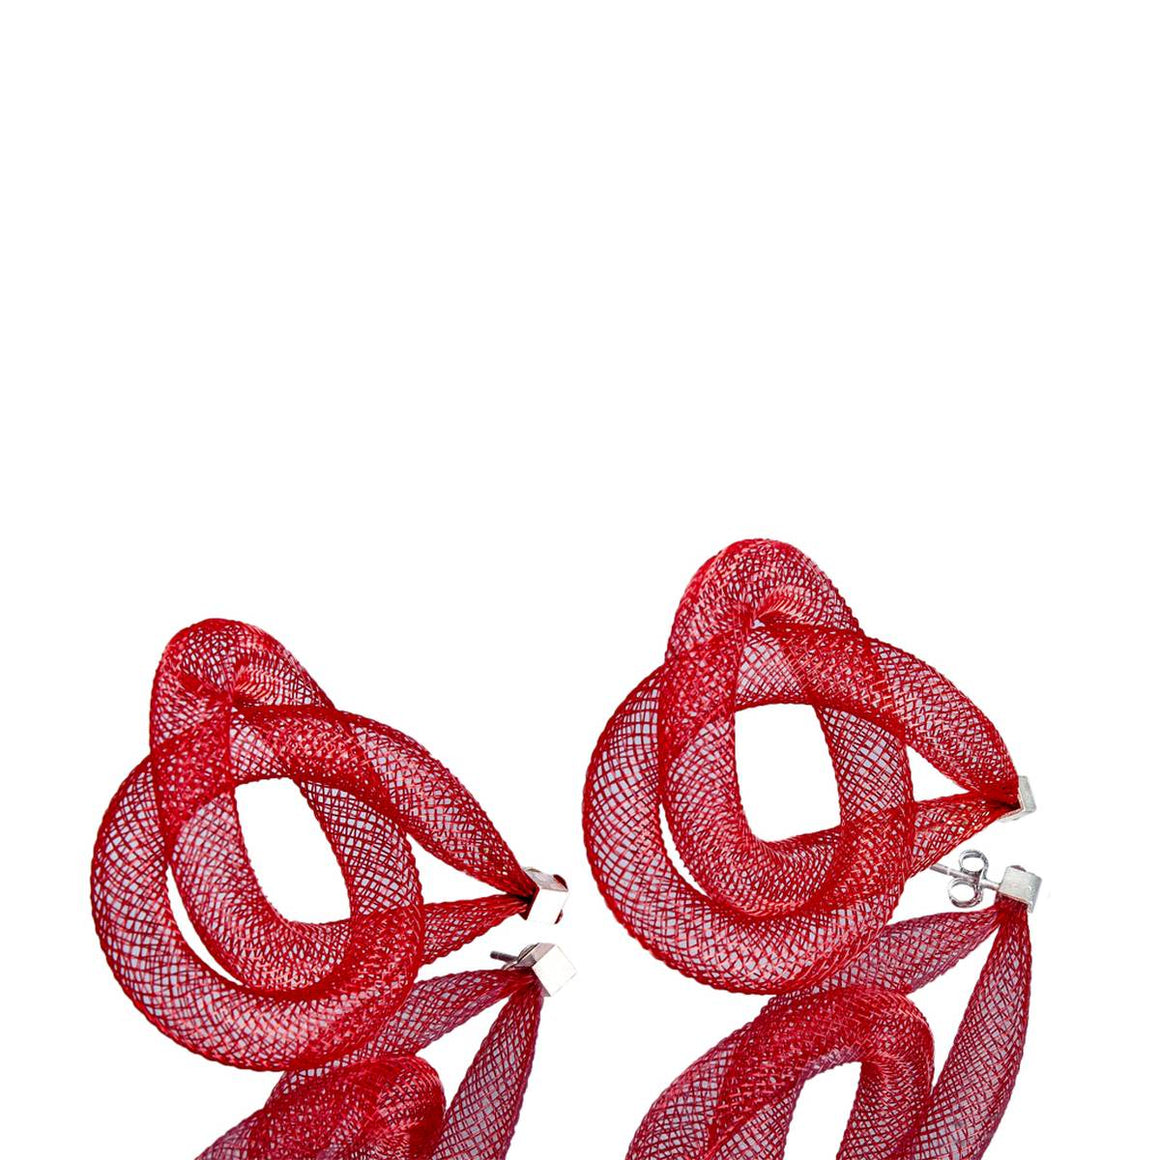 A pair of red earrings made from finely woven nylon mesh formed into tubing. Each earring is a knot of  red mesh tube.